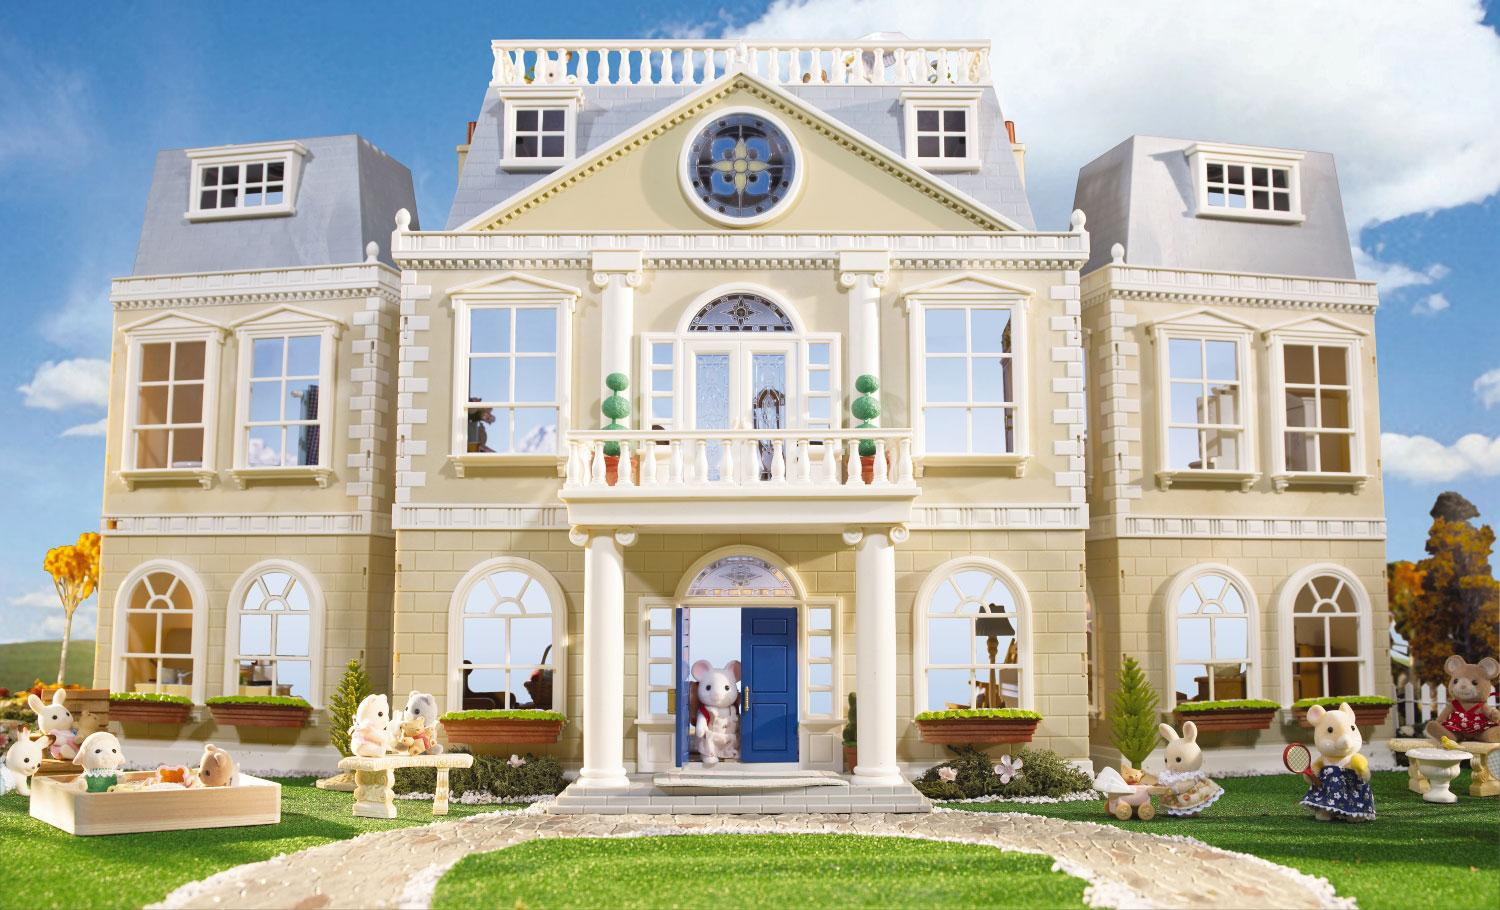 Calico Critters Cloverleaf Manor Mansion 1500x910